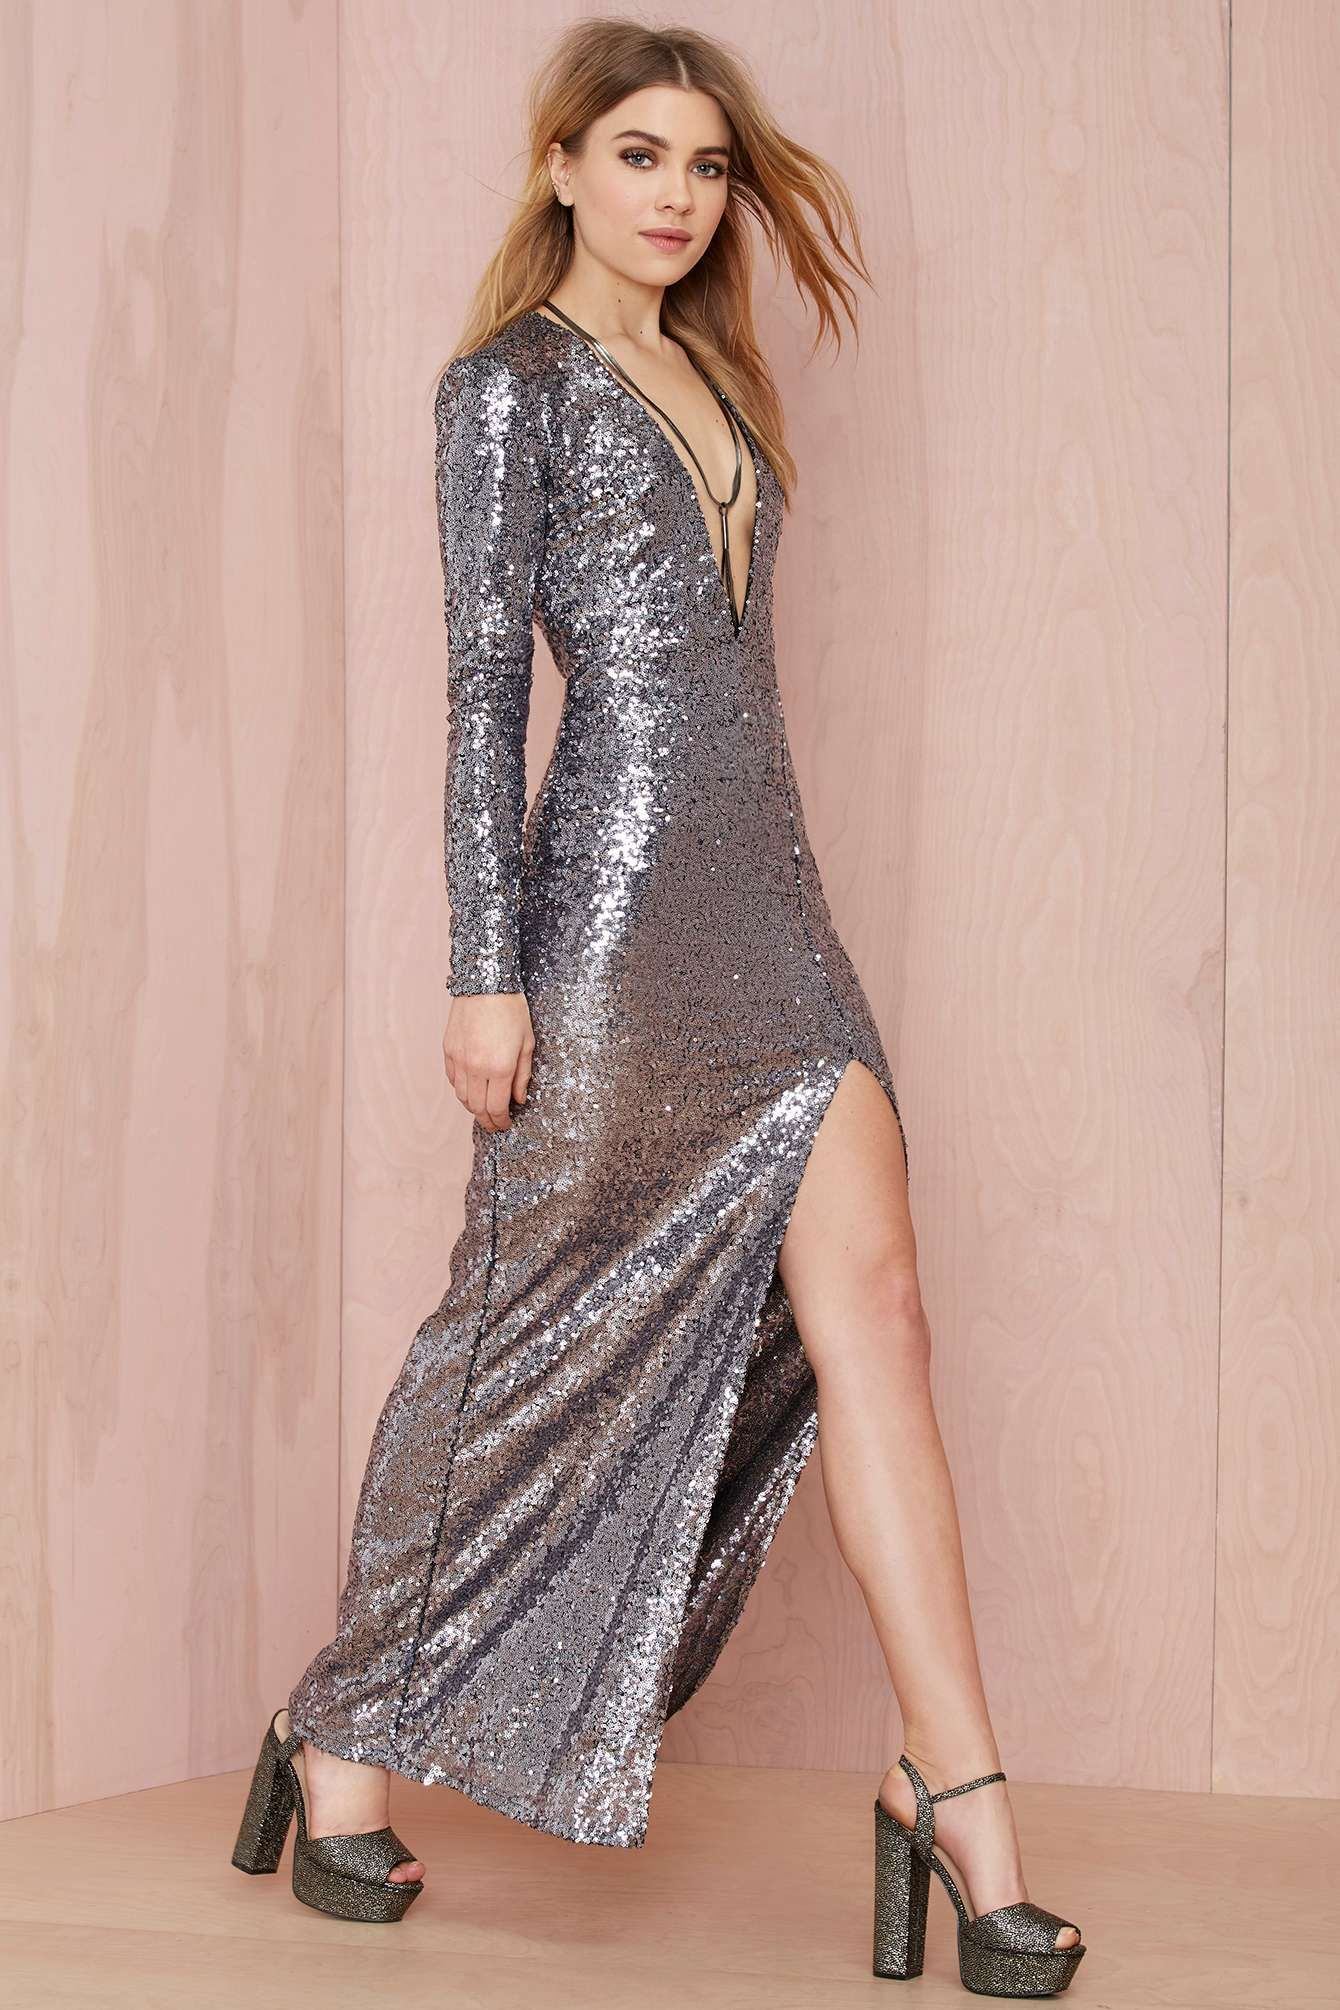 hustle sequin dress 98 | Style Loves | Pinterest